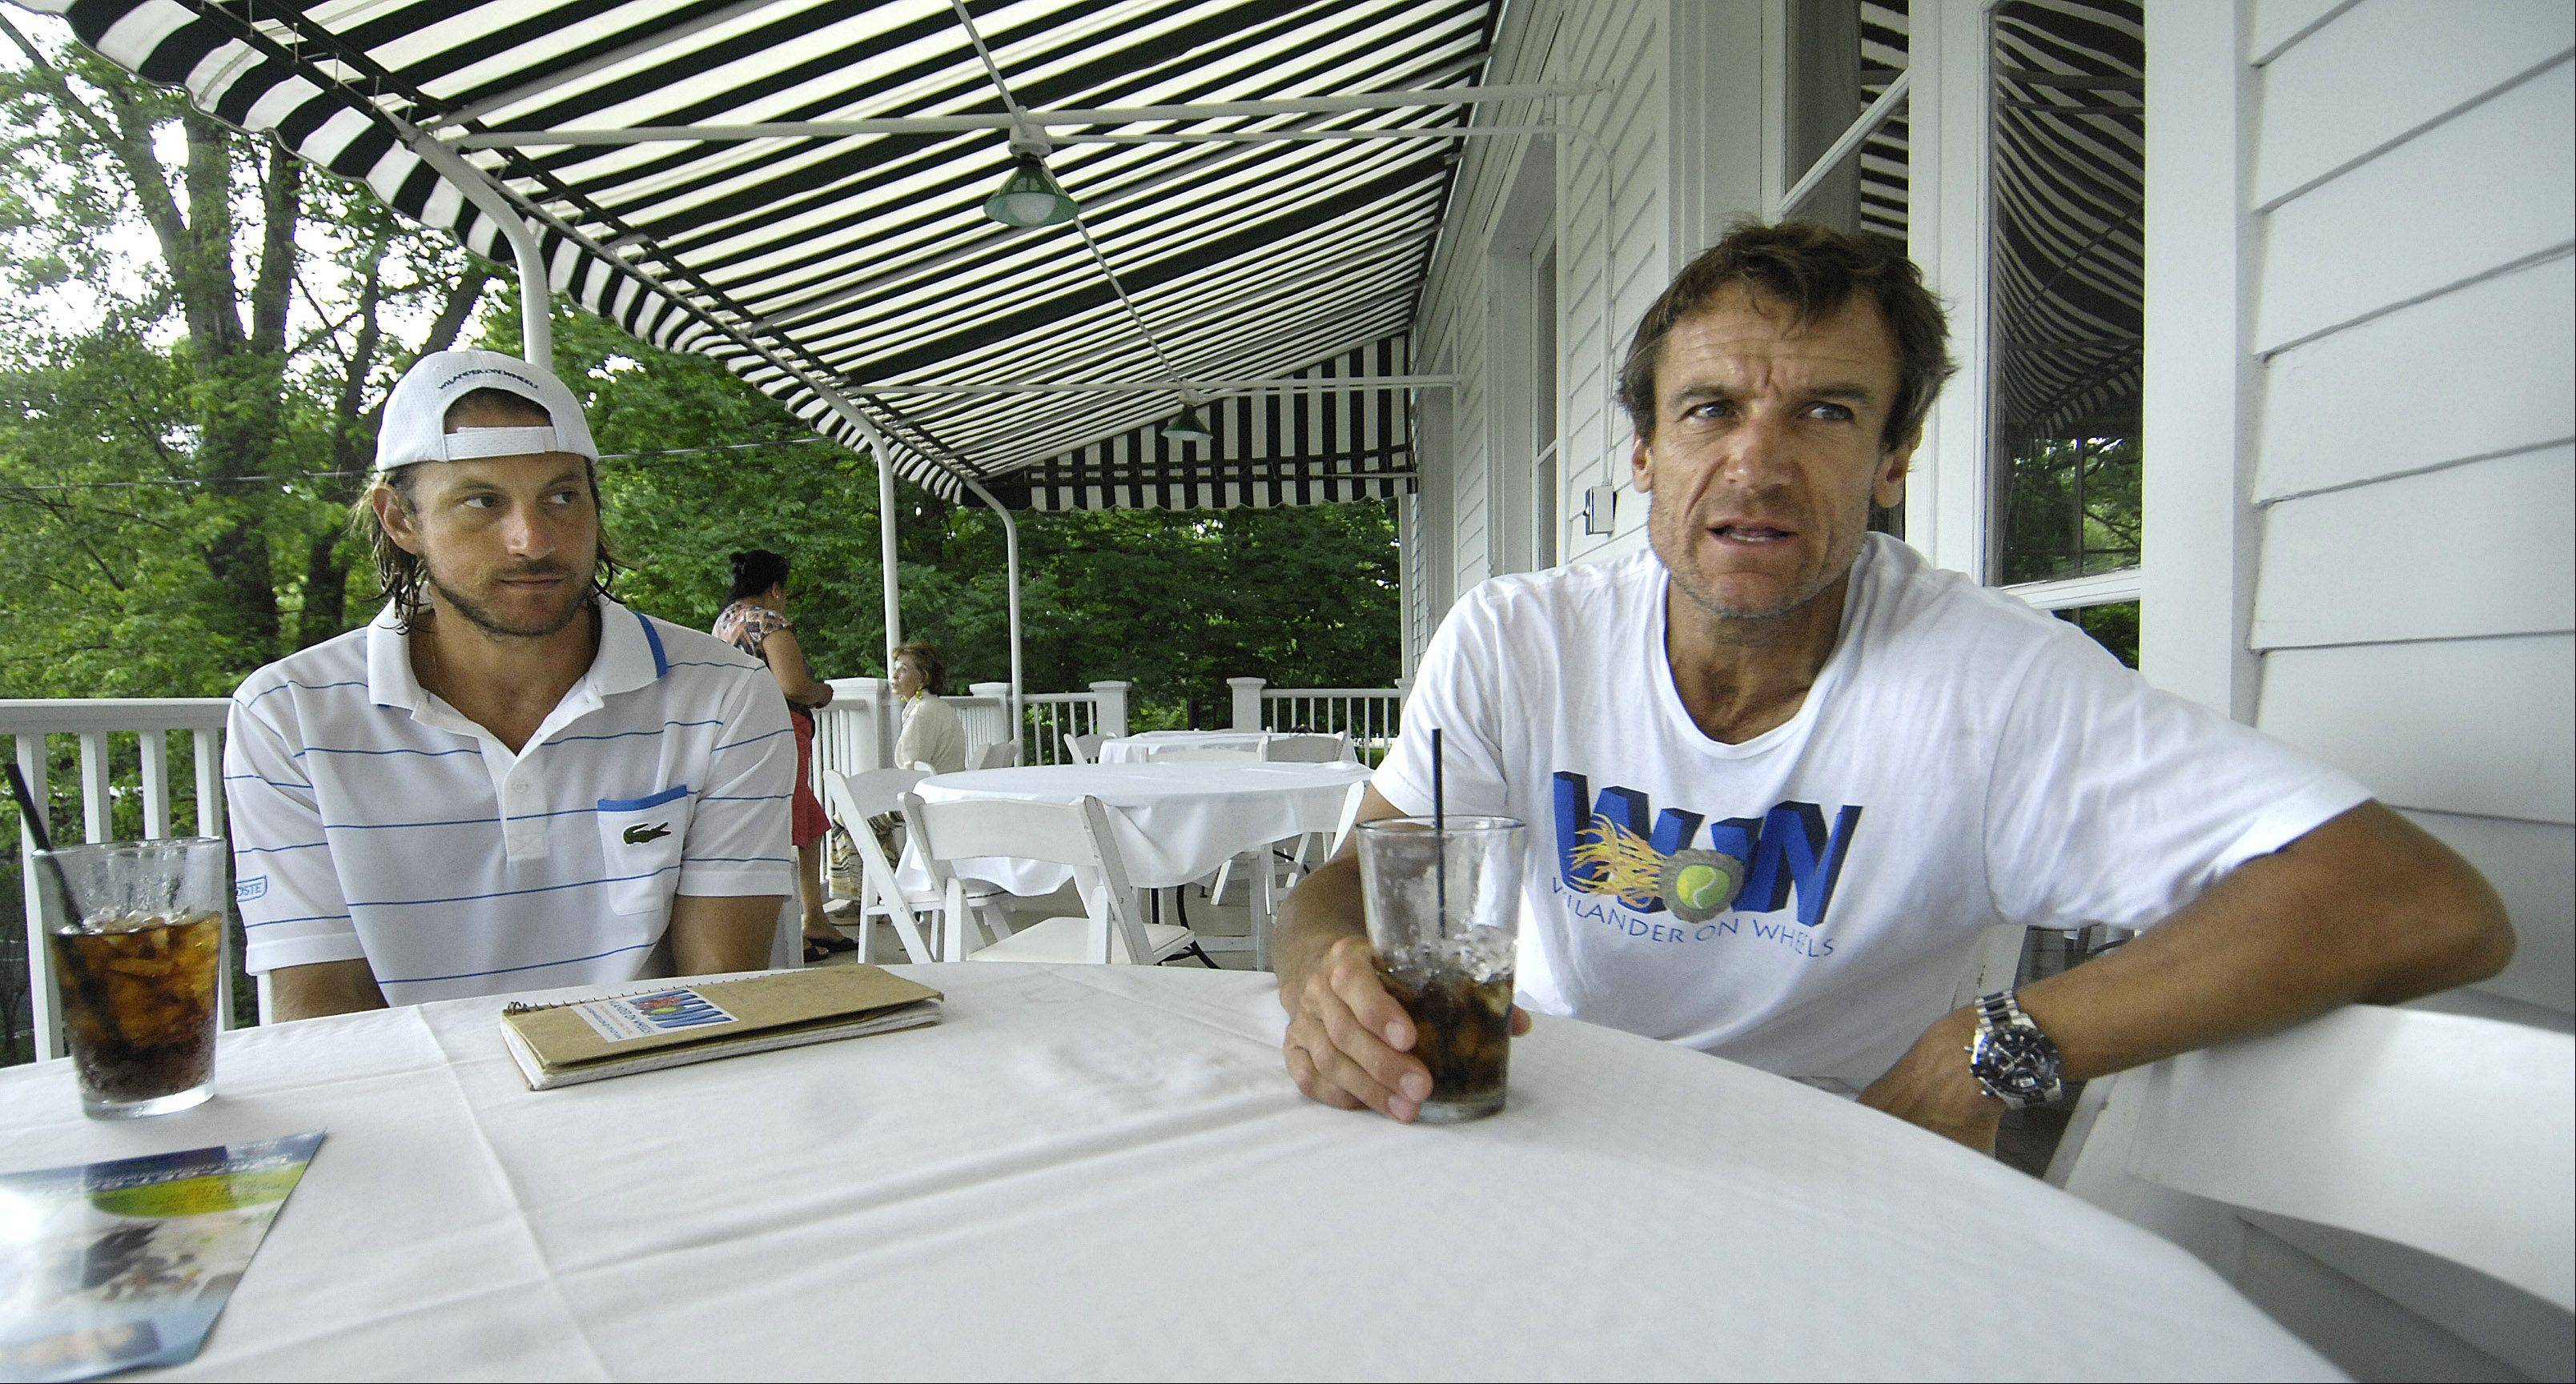 Wimbledon watching with Mats Wilander